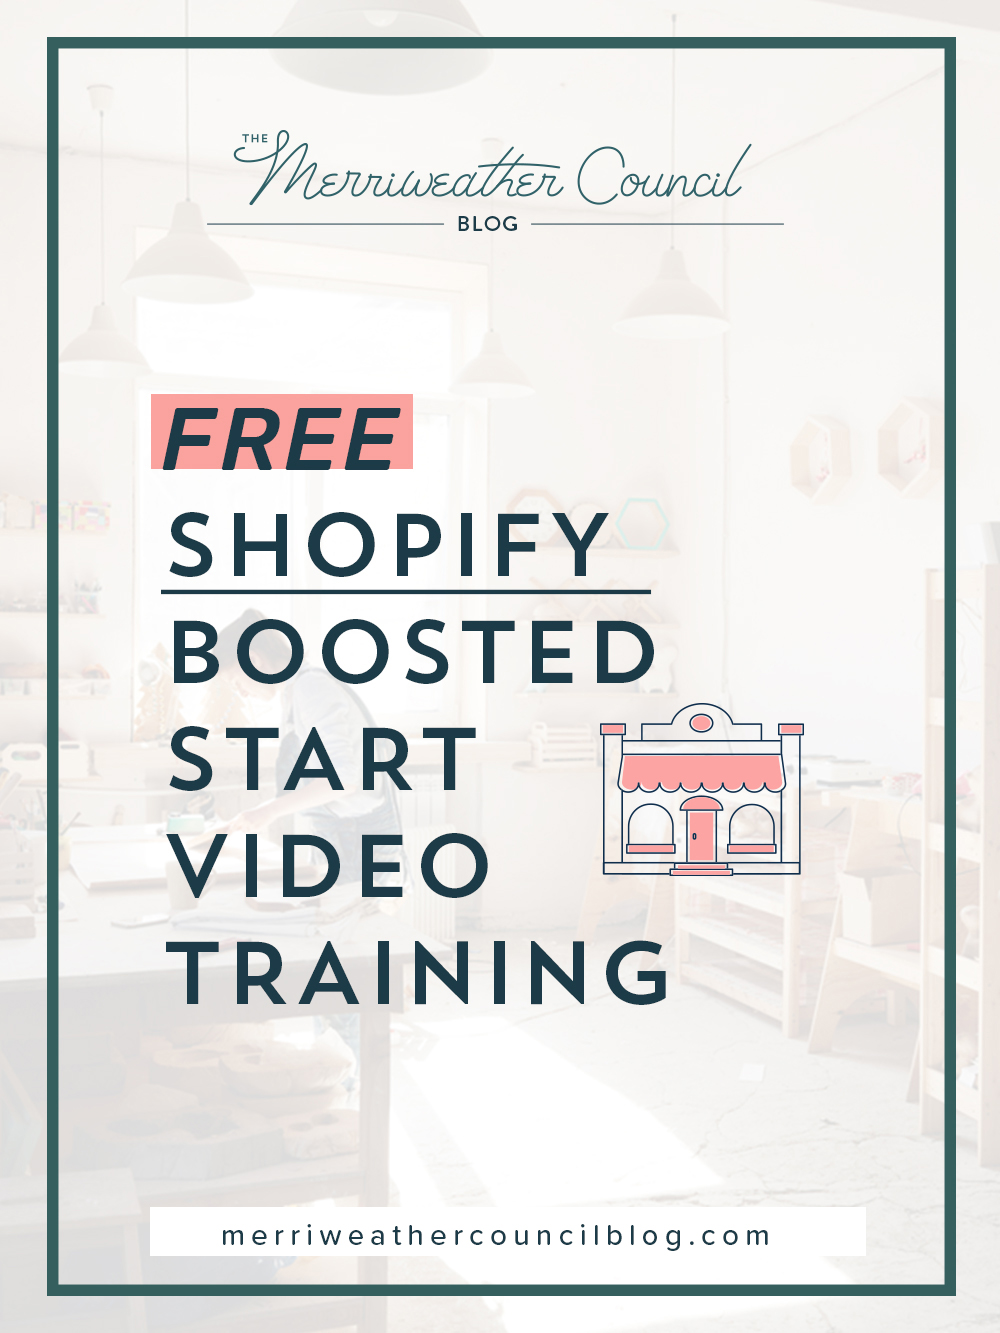 free shopify beginner video training! | The merriweather council blog